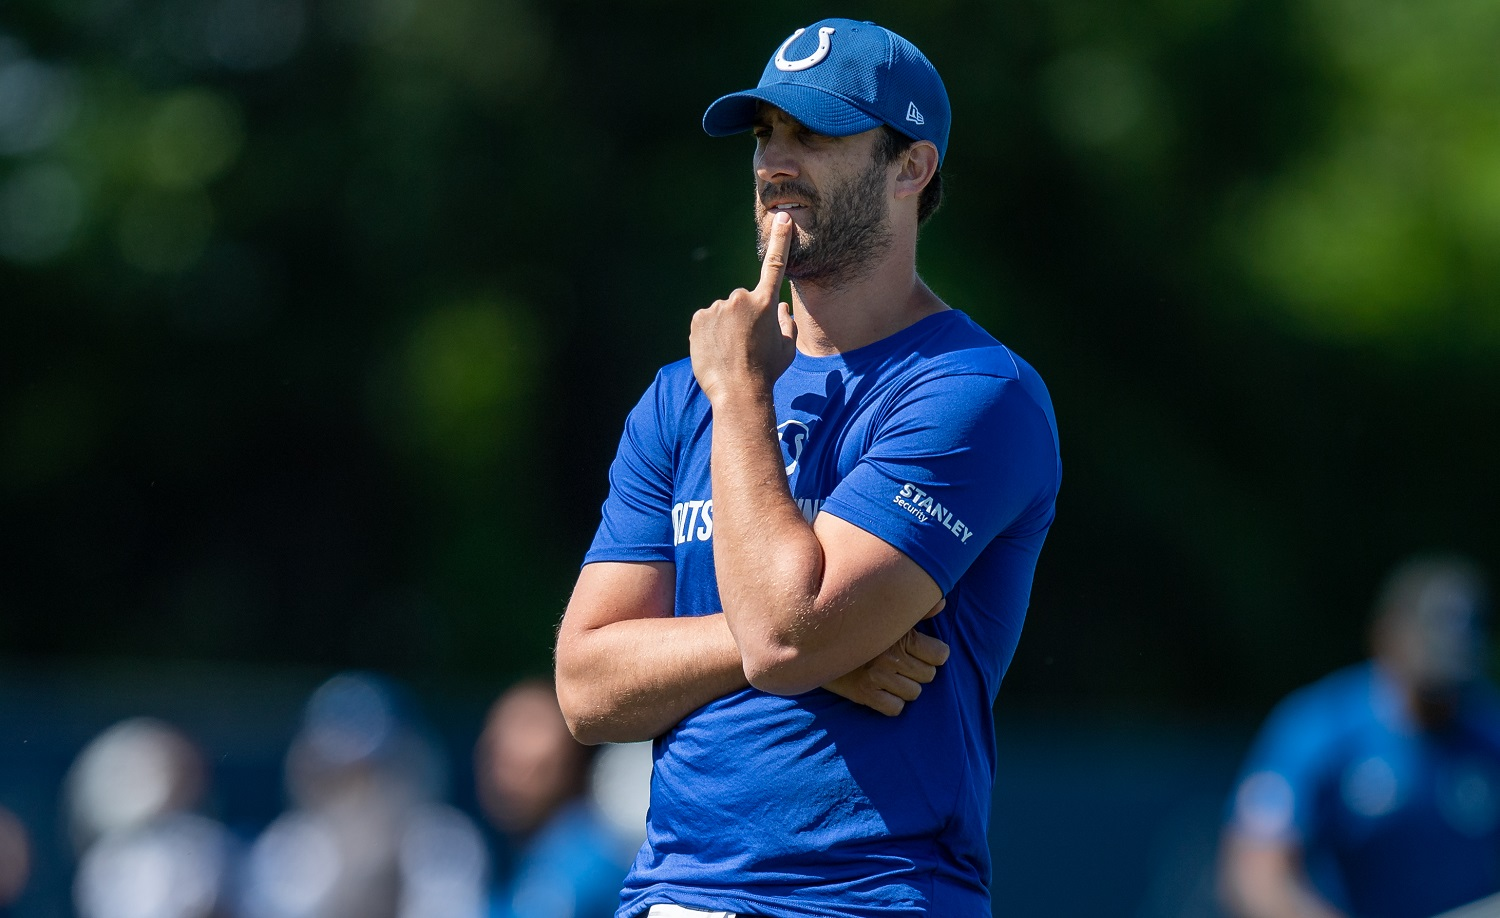 Nick Sirianni is heading into his first NFL draft as a head coach. | Zach Bolinger/Icon Sportswire via Getty Images